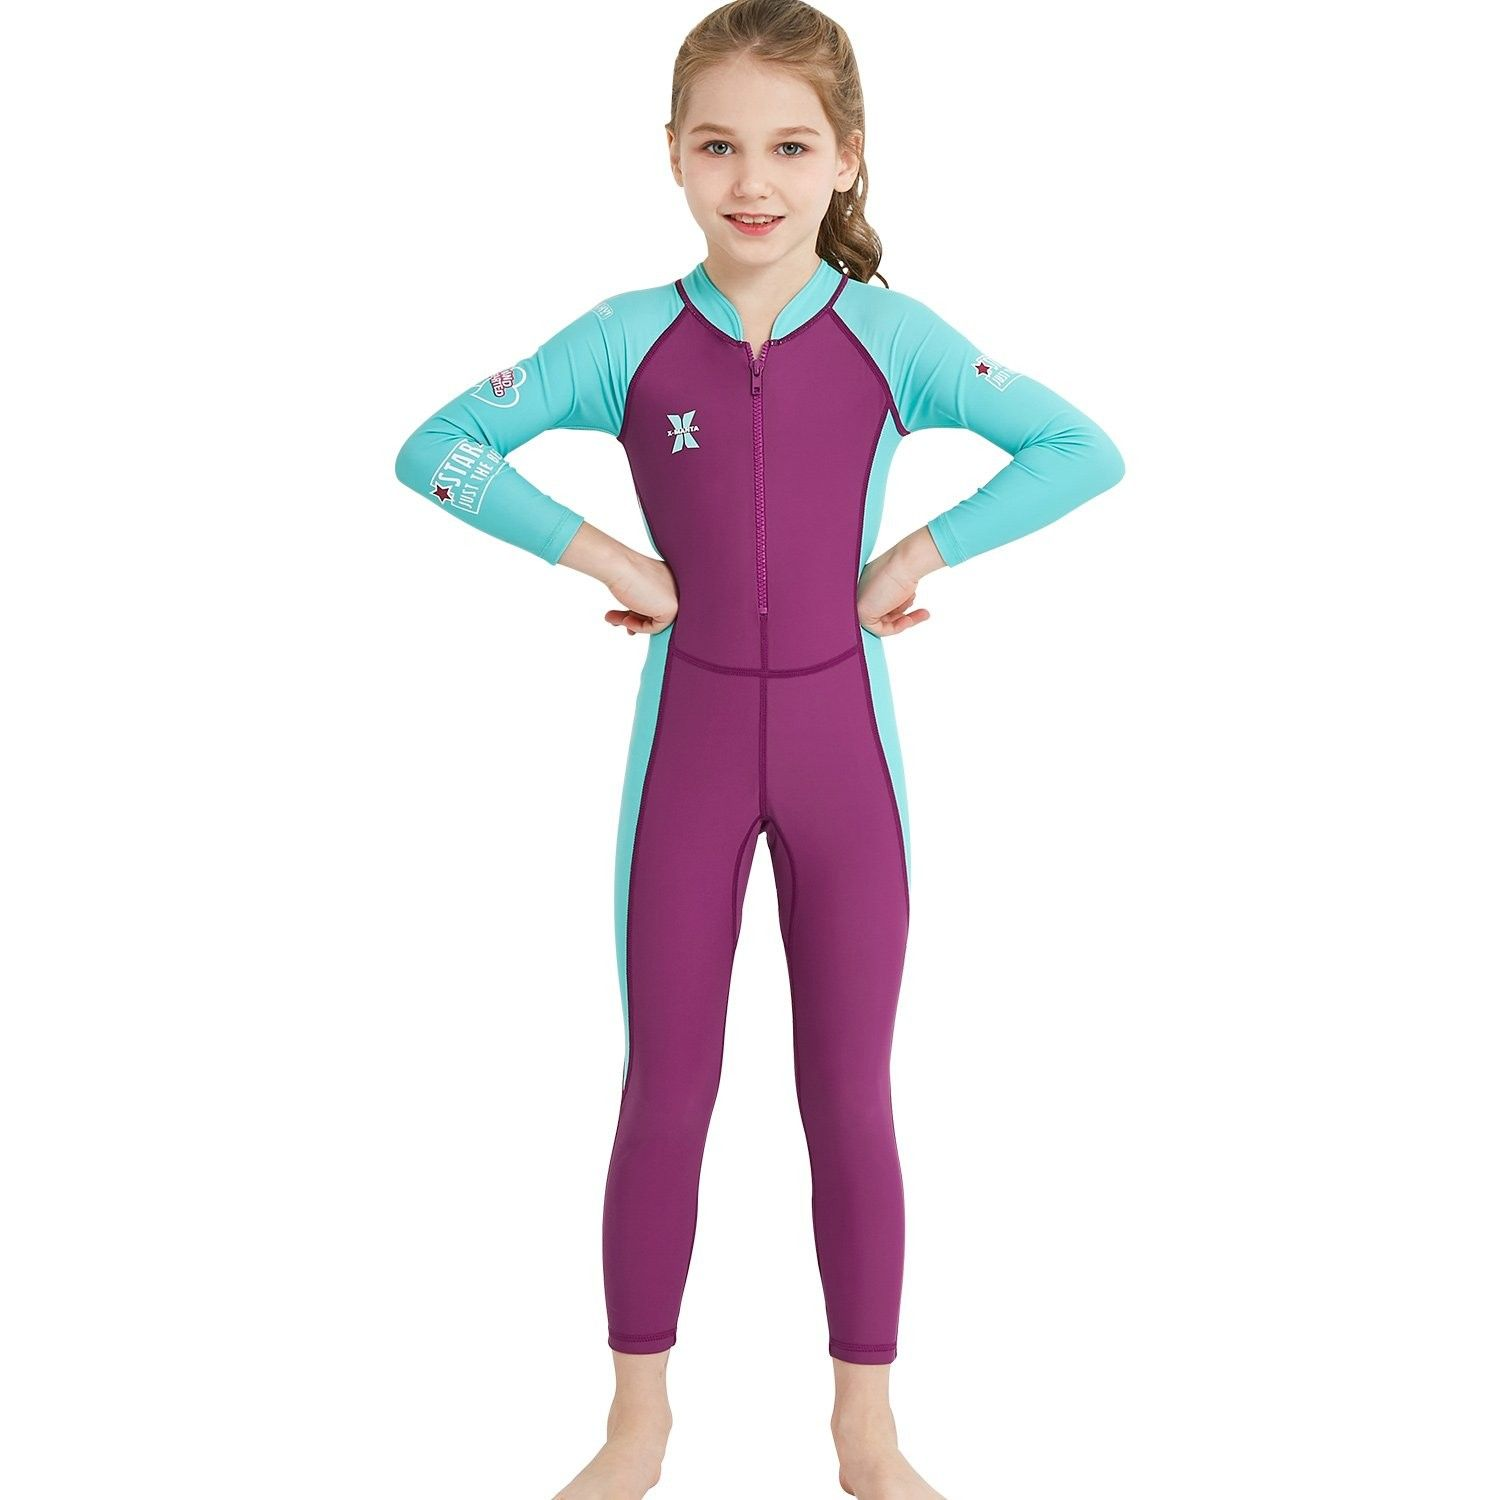 Sun Protection Purple, 3t Girl Two Pieces Swimsuit Long Sleeve with UPF 50